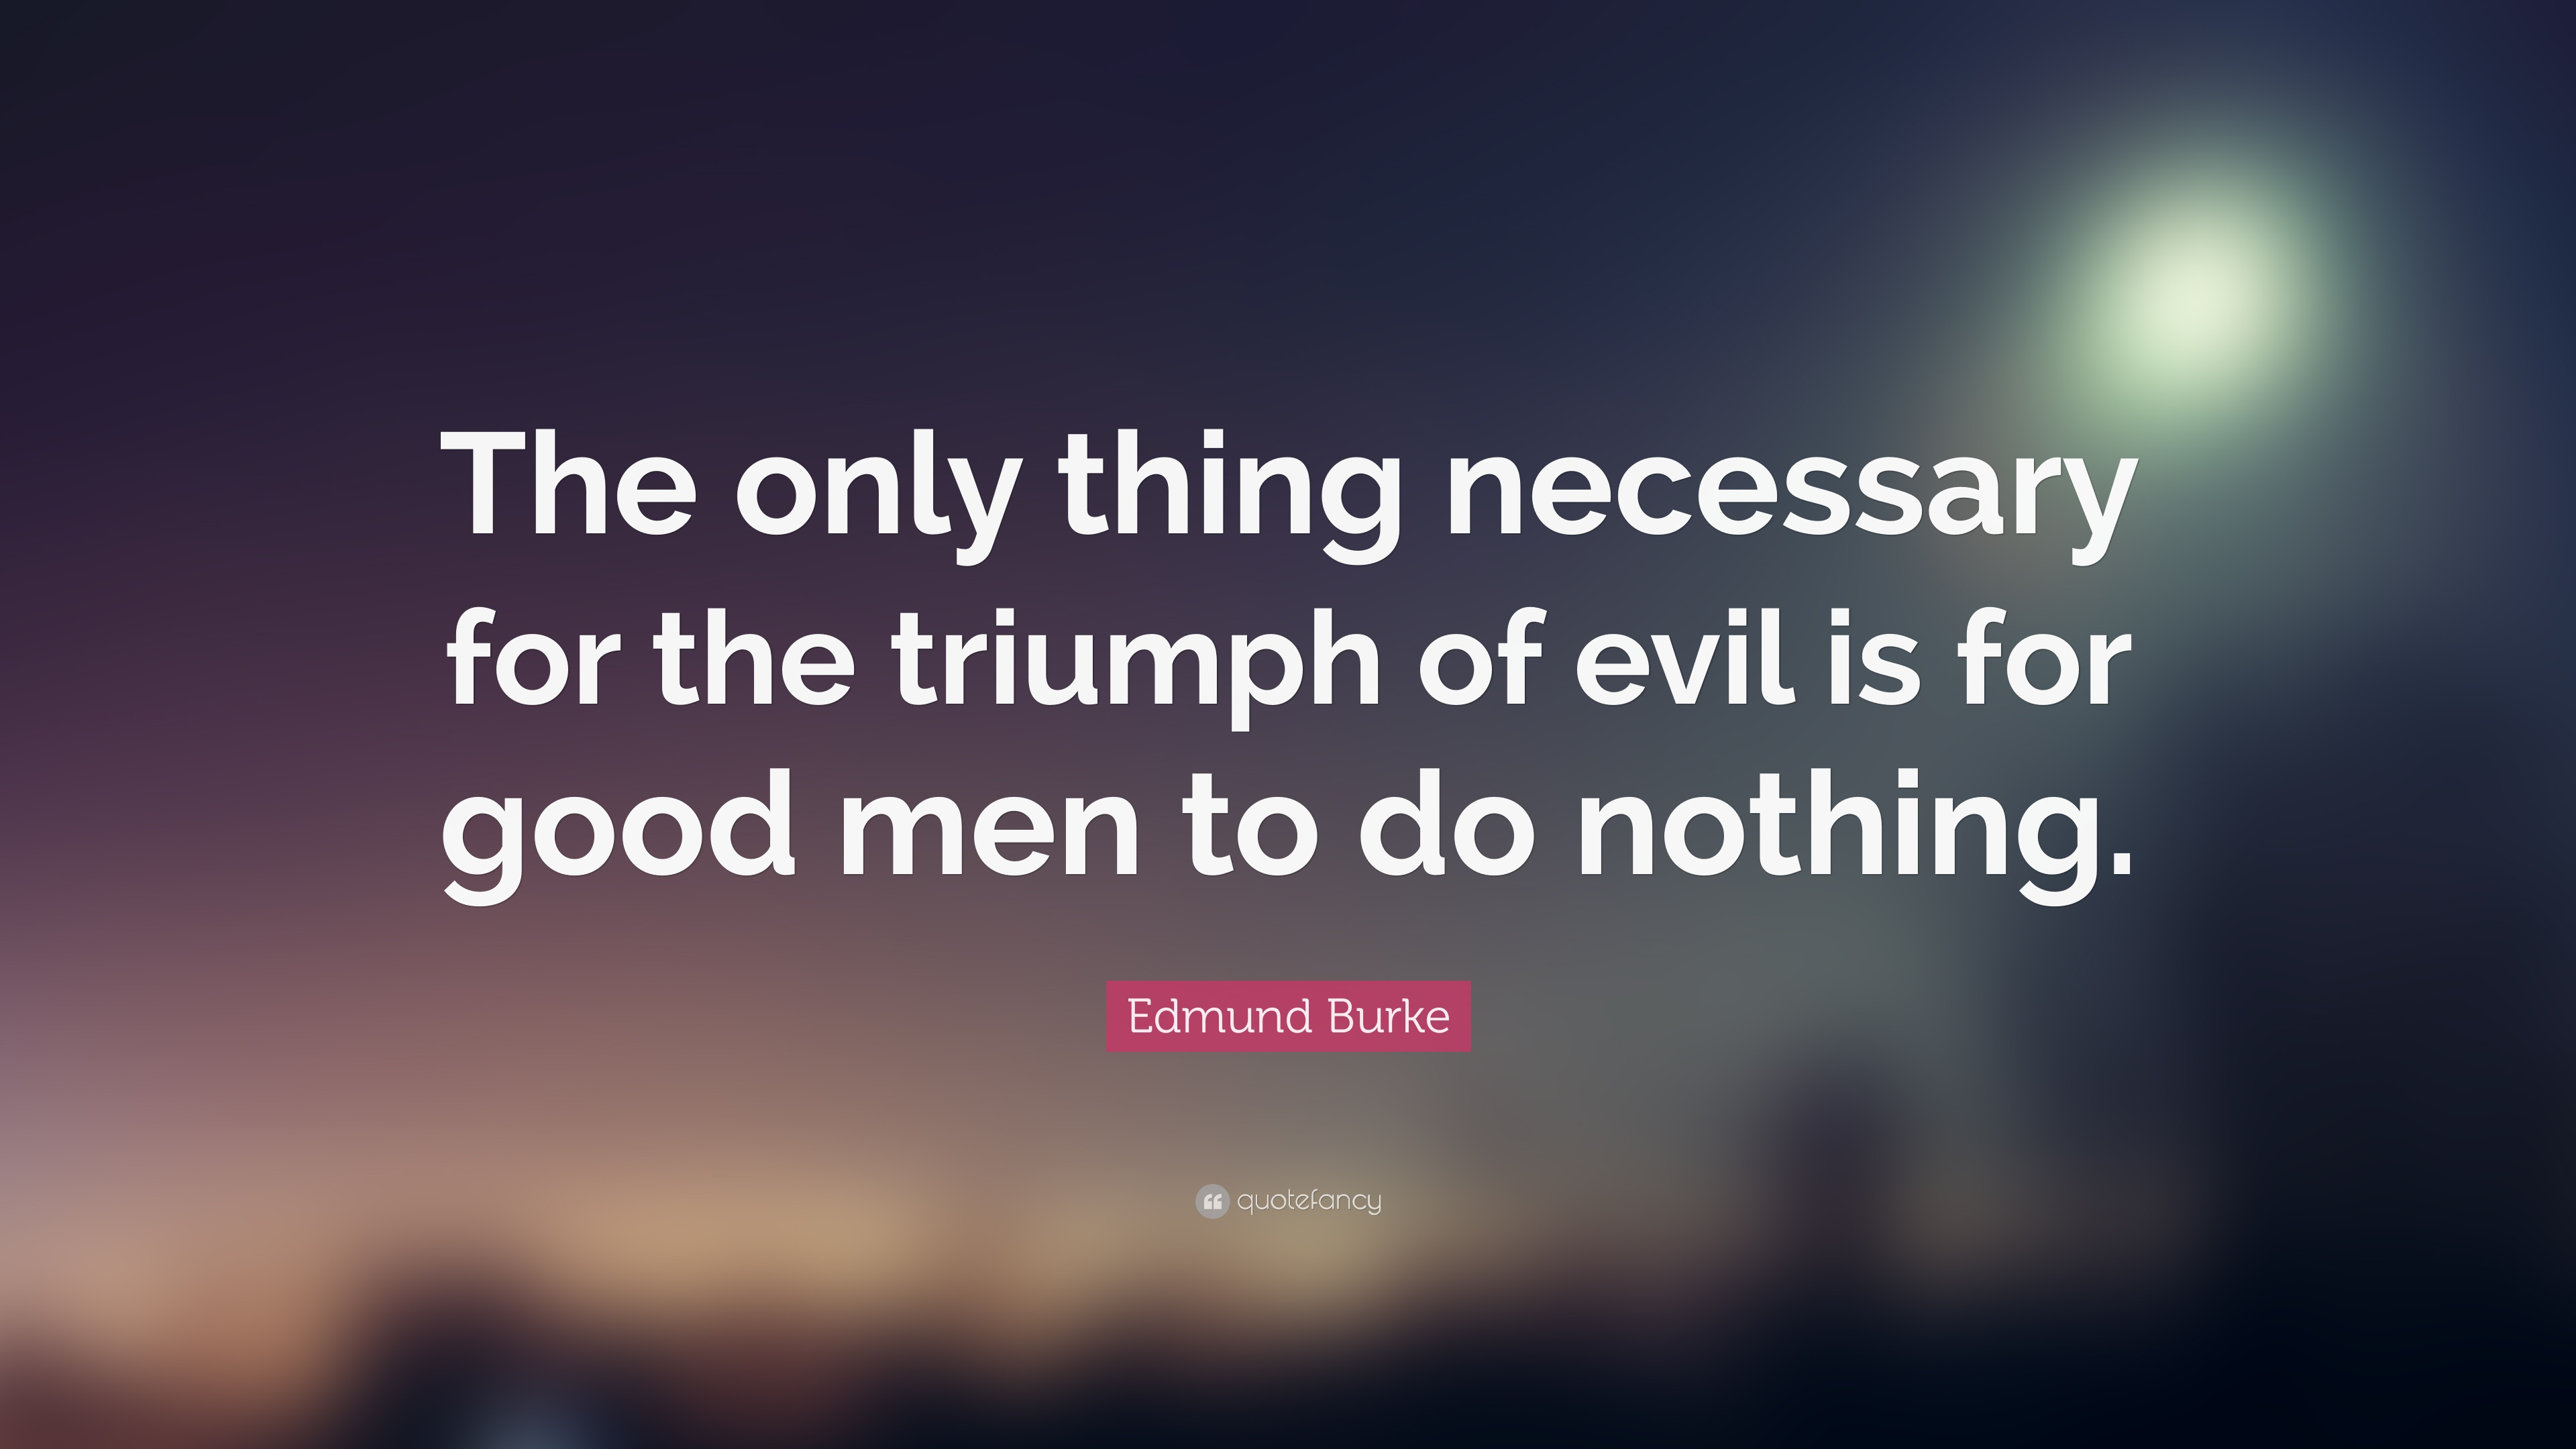 The Only Thing Necessary For The Triumph Of Evil Is For Good Men To Do Nothing 69